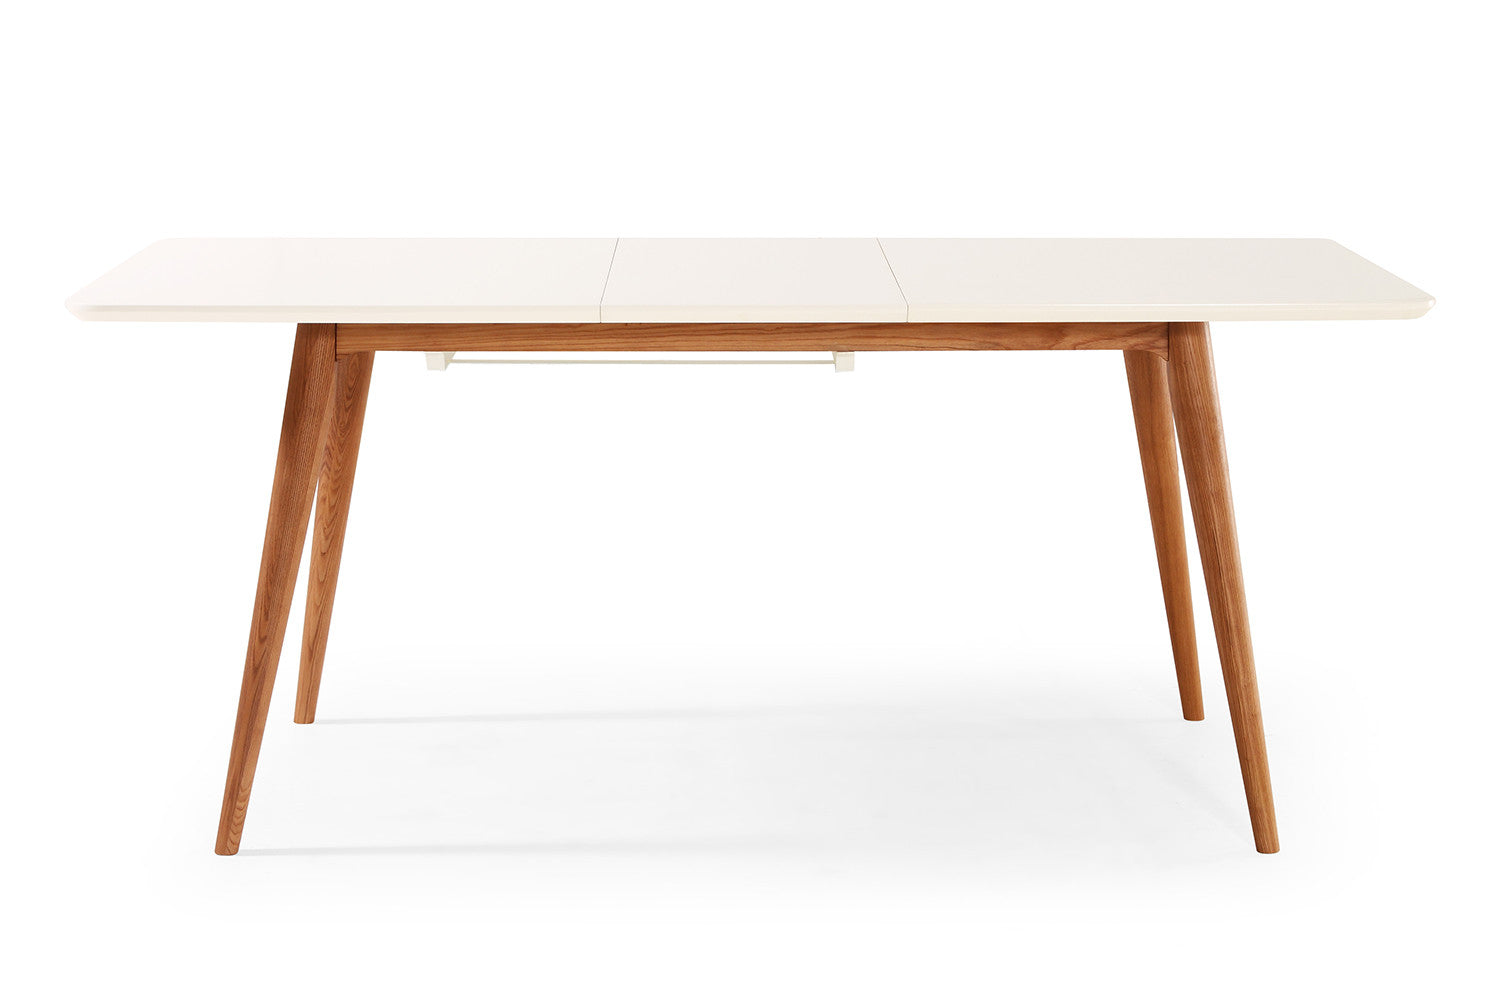 Table de salle manger extensible scandinave wyna dewarens for Table de salle a manger orientale